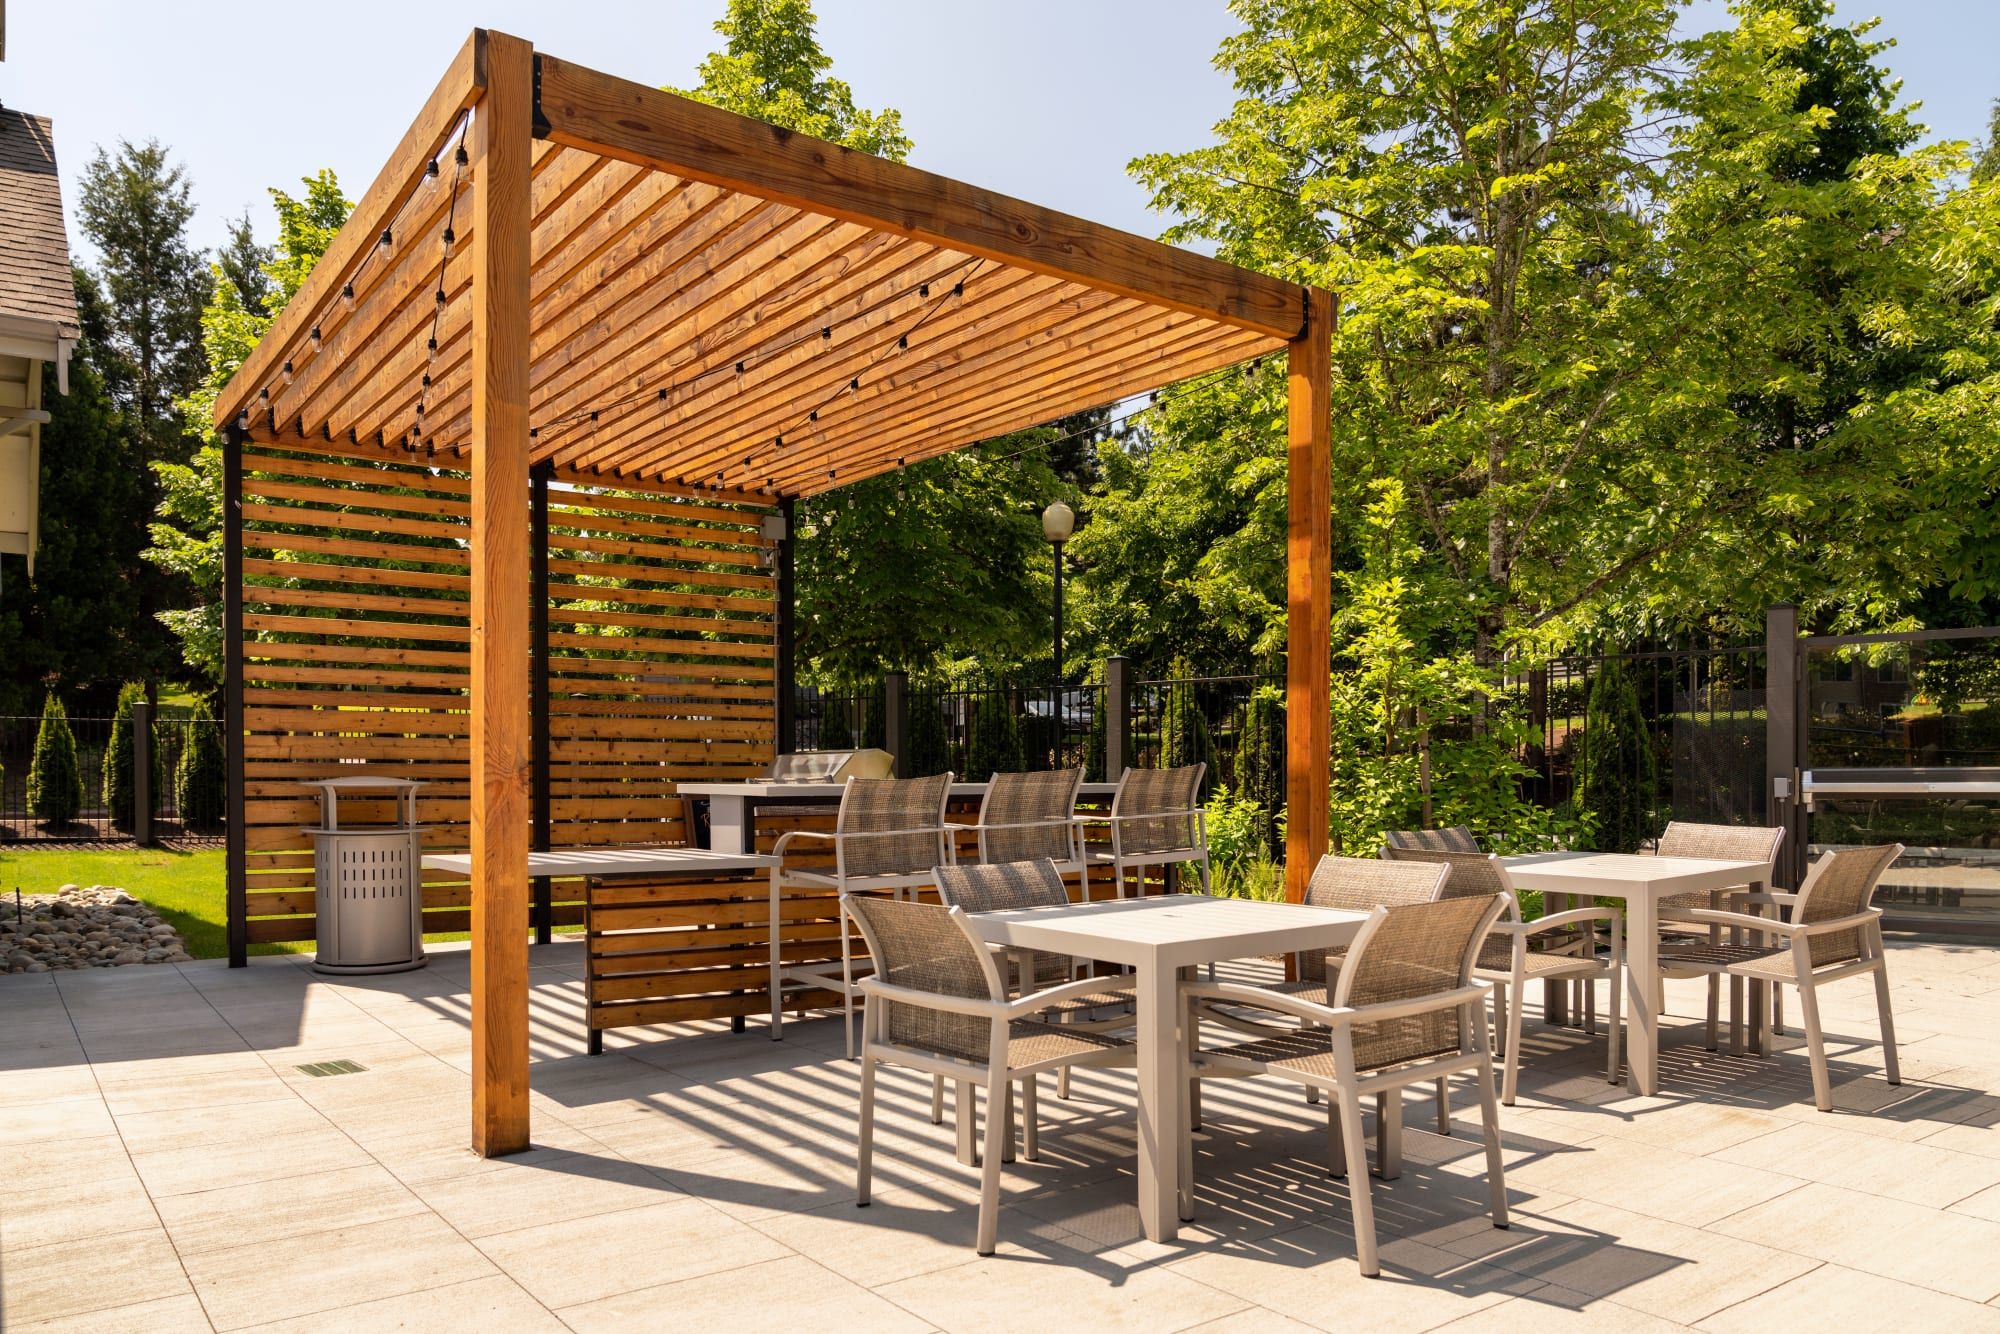 A grilling area and dining tables at Brookside Village in Auburn, Washington